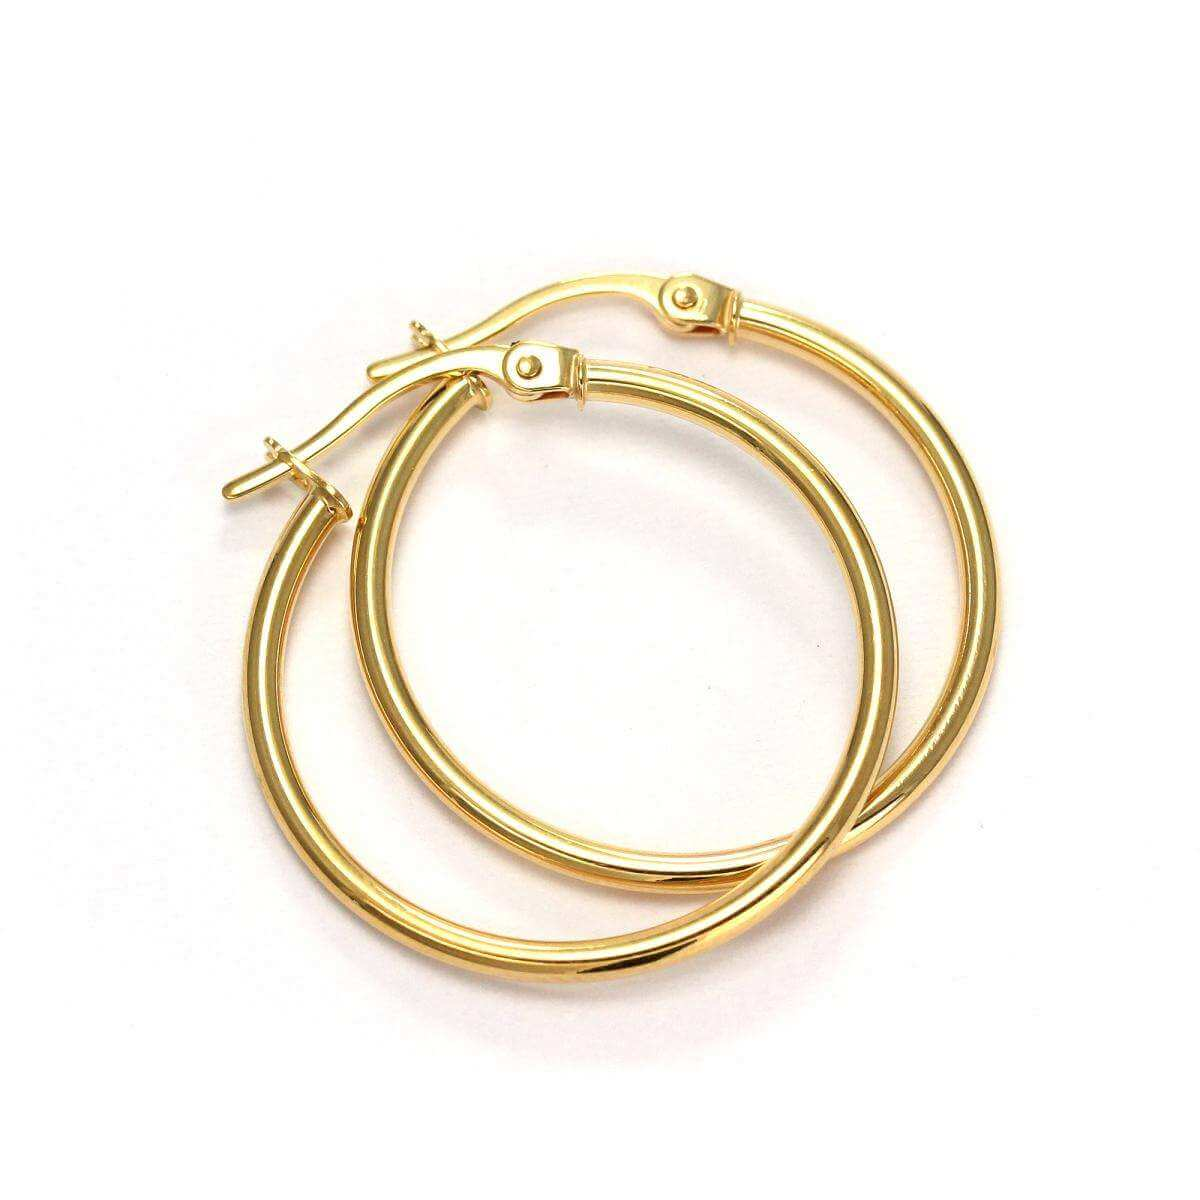 9ct Gold 21mm Sleeper Hoop Earrings